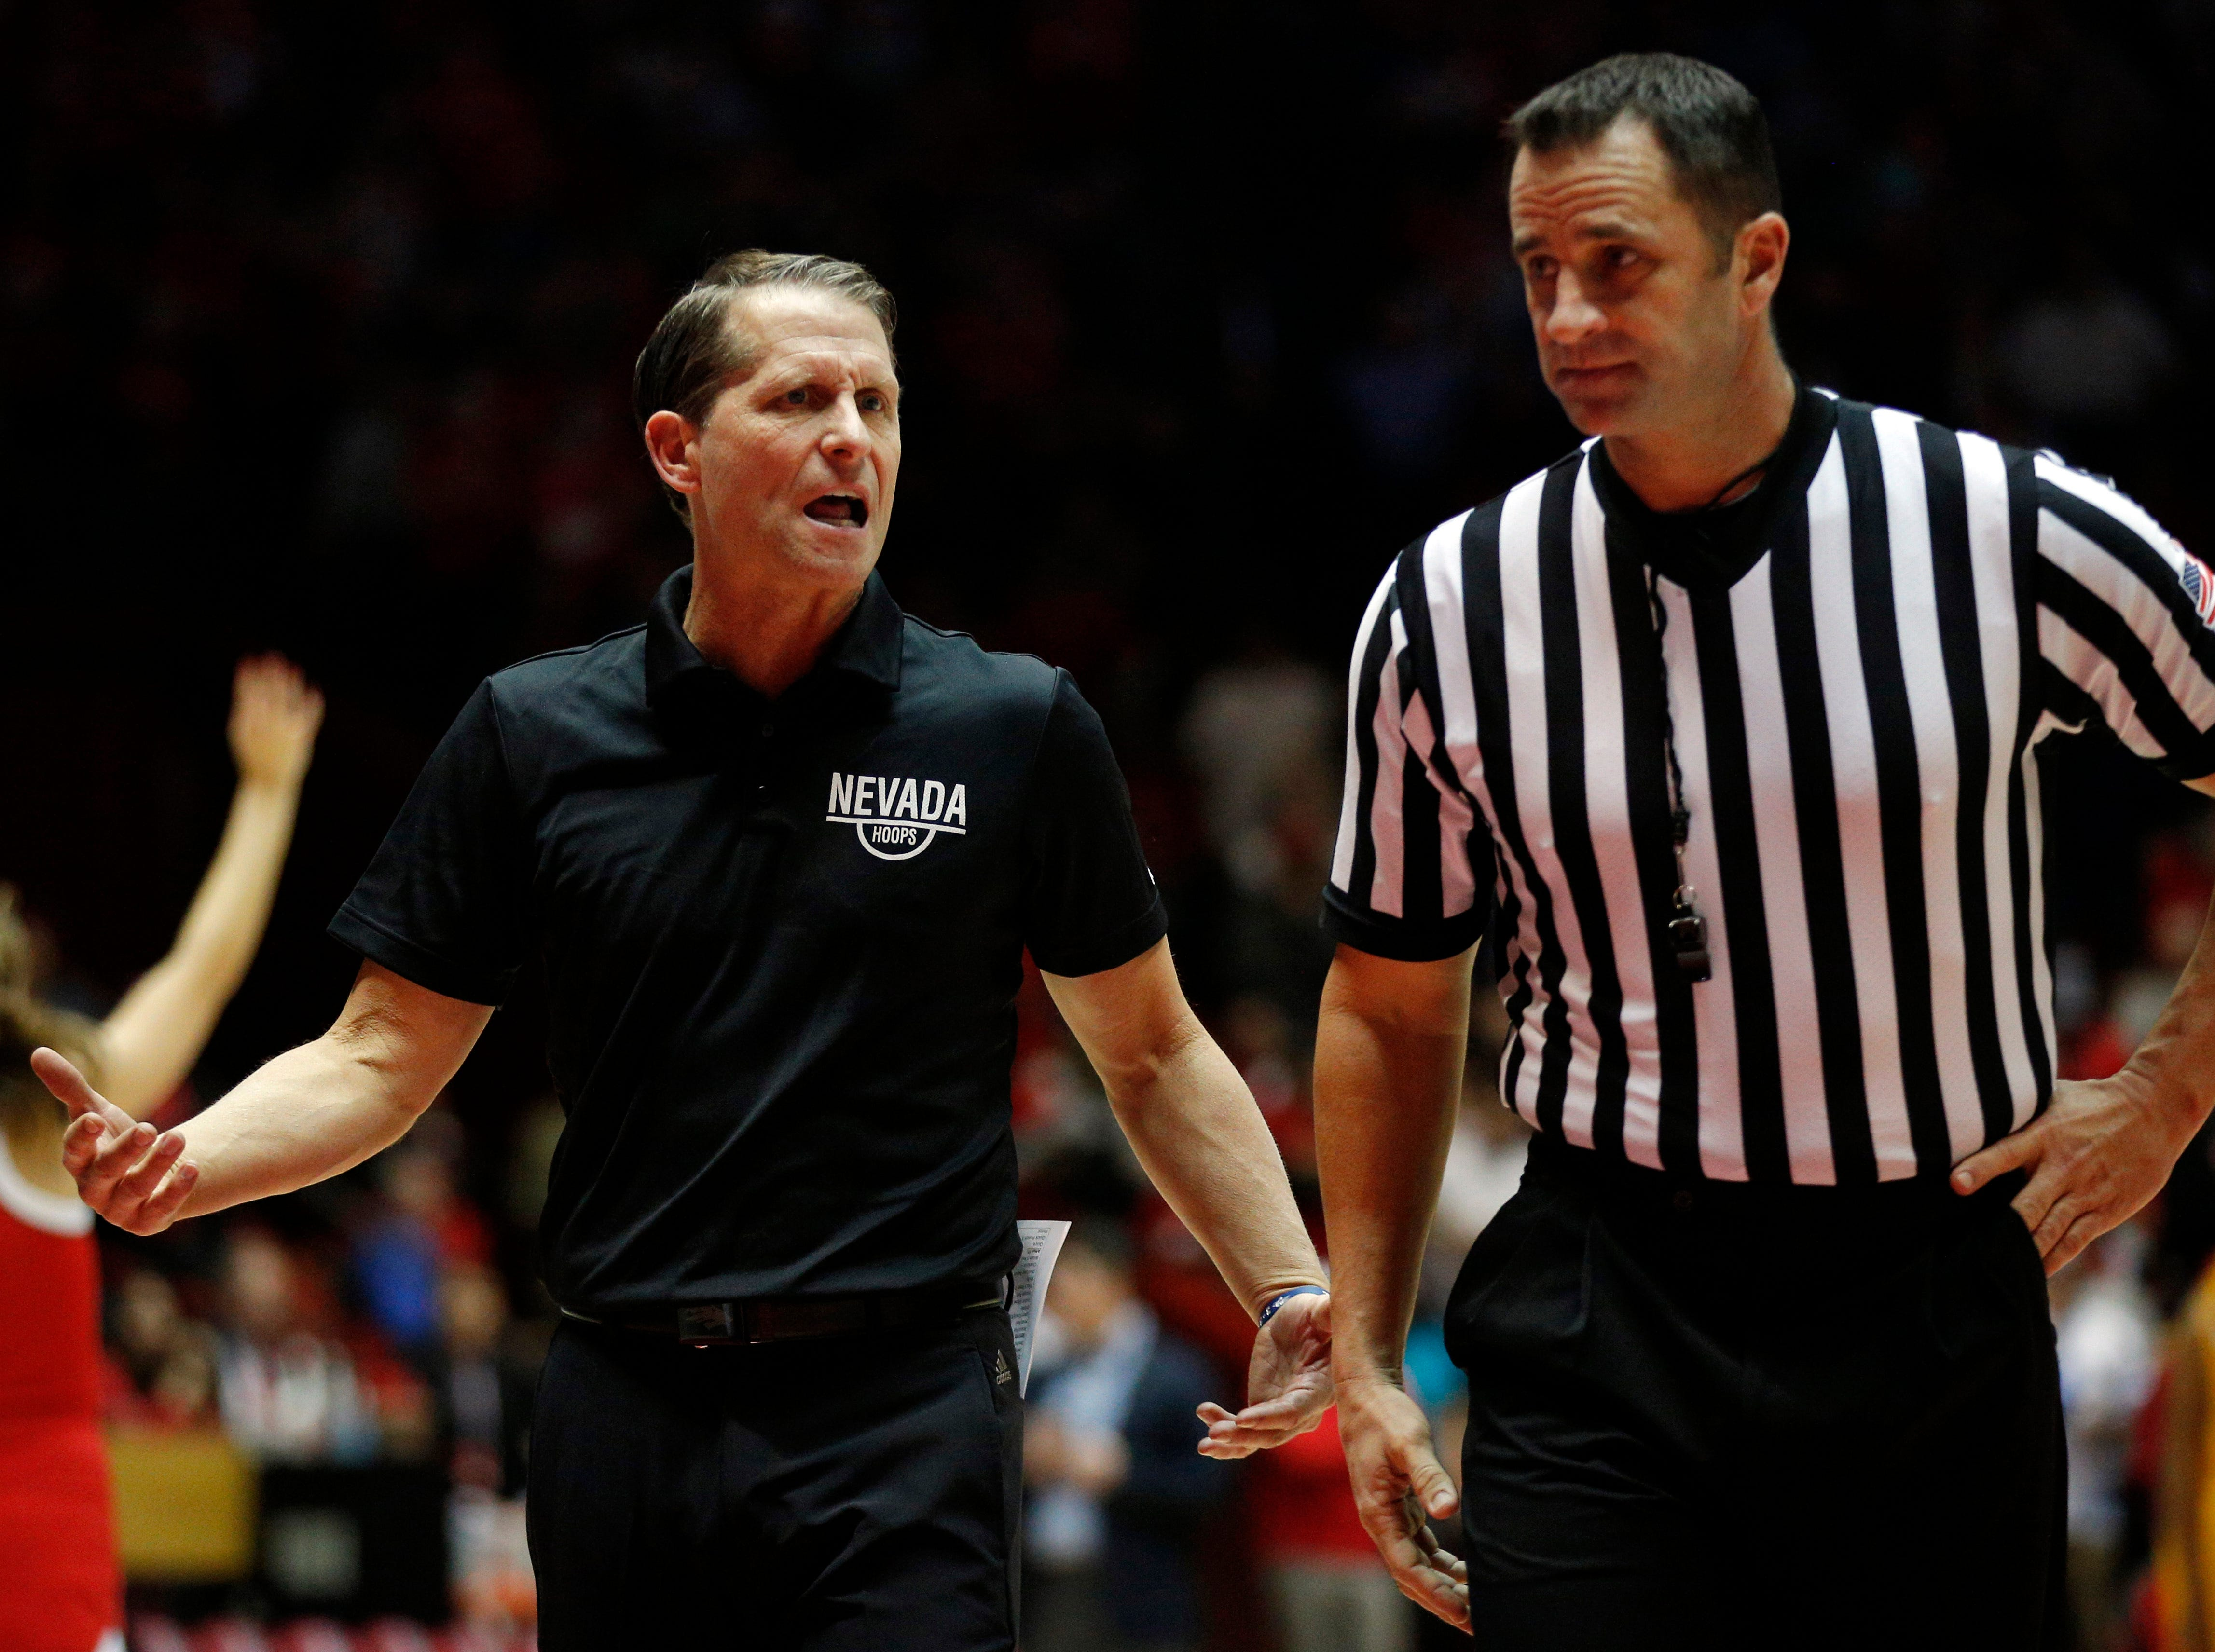 Nevada head coach Eric Musselman, left, argues with official D.G. Nelson during the second half of an NCAA college basketball game against New Mexico in Albuquerque, N.M., Saturday, Jan. 5, 2019. (AP Photo/Andres Leighton)